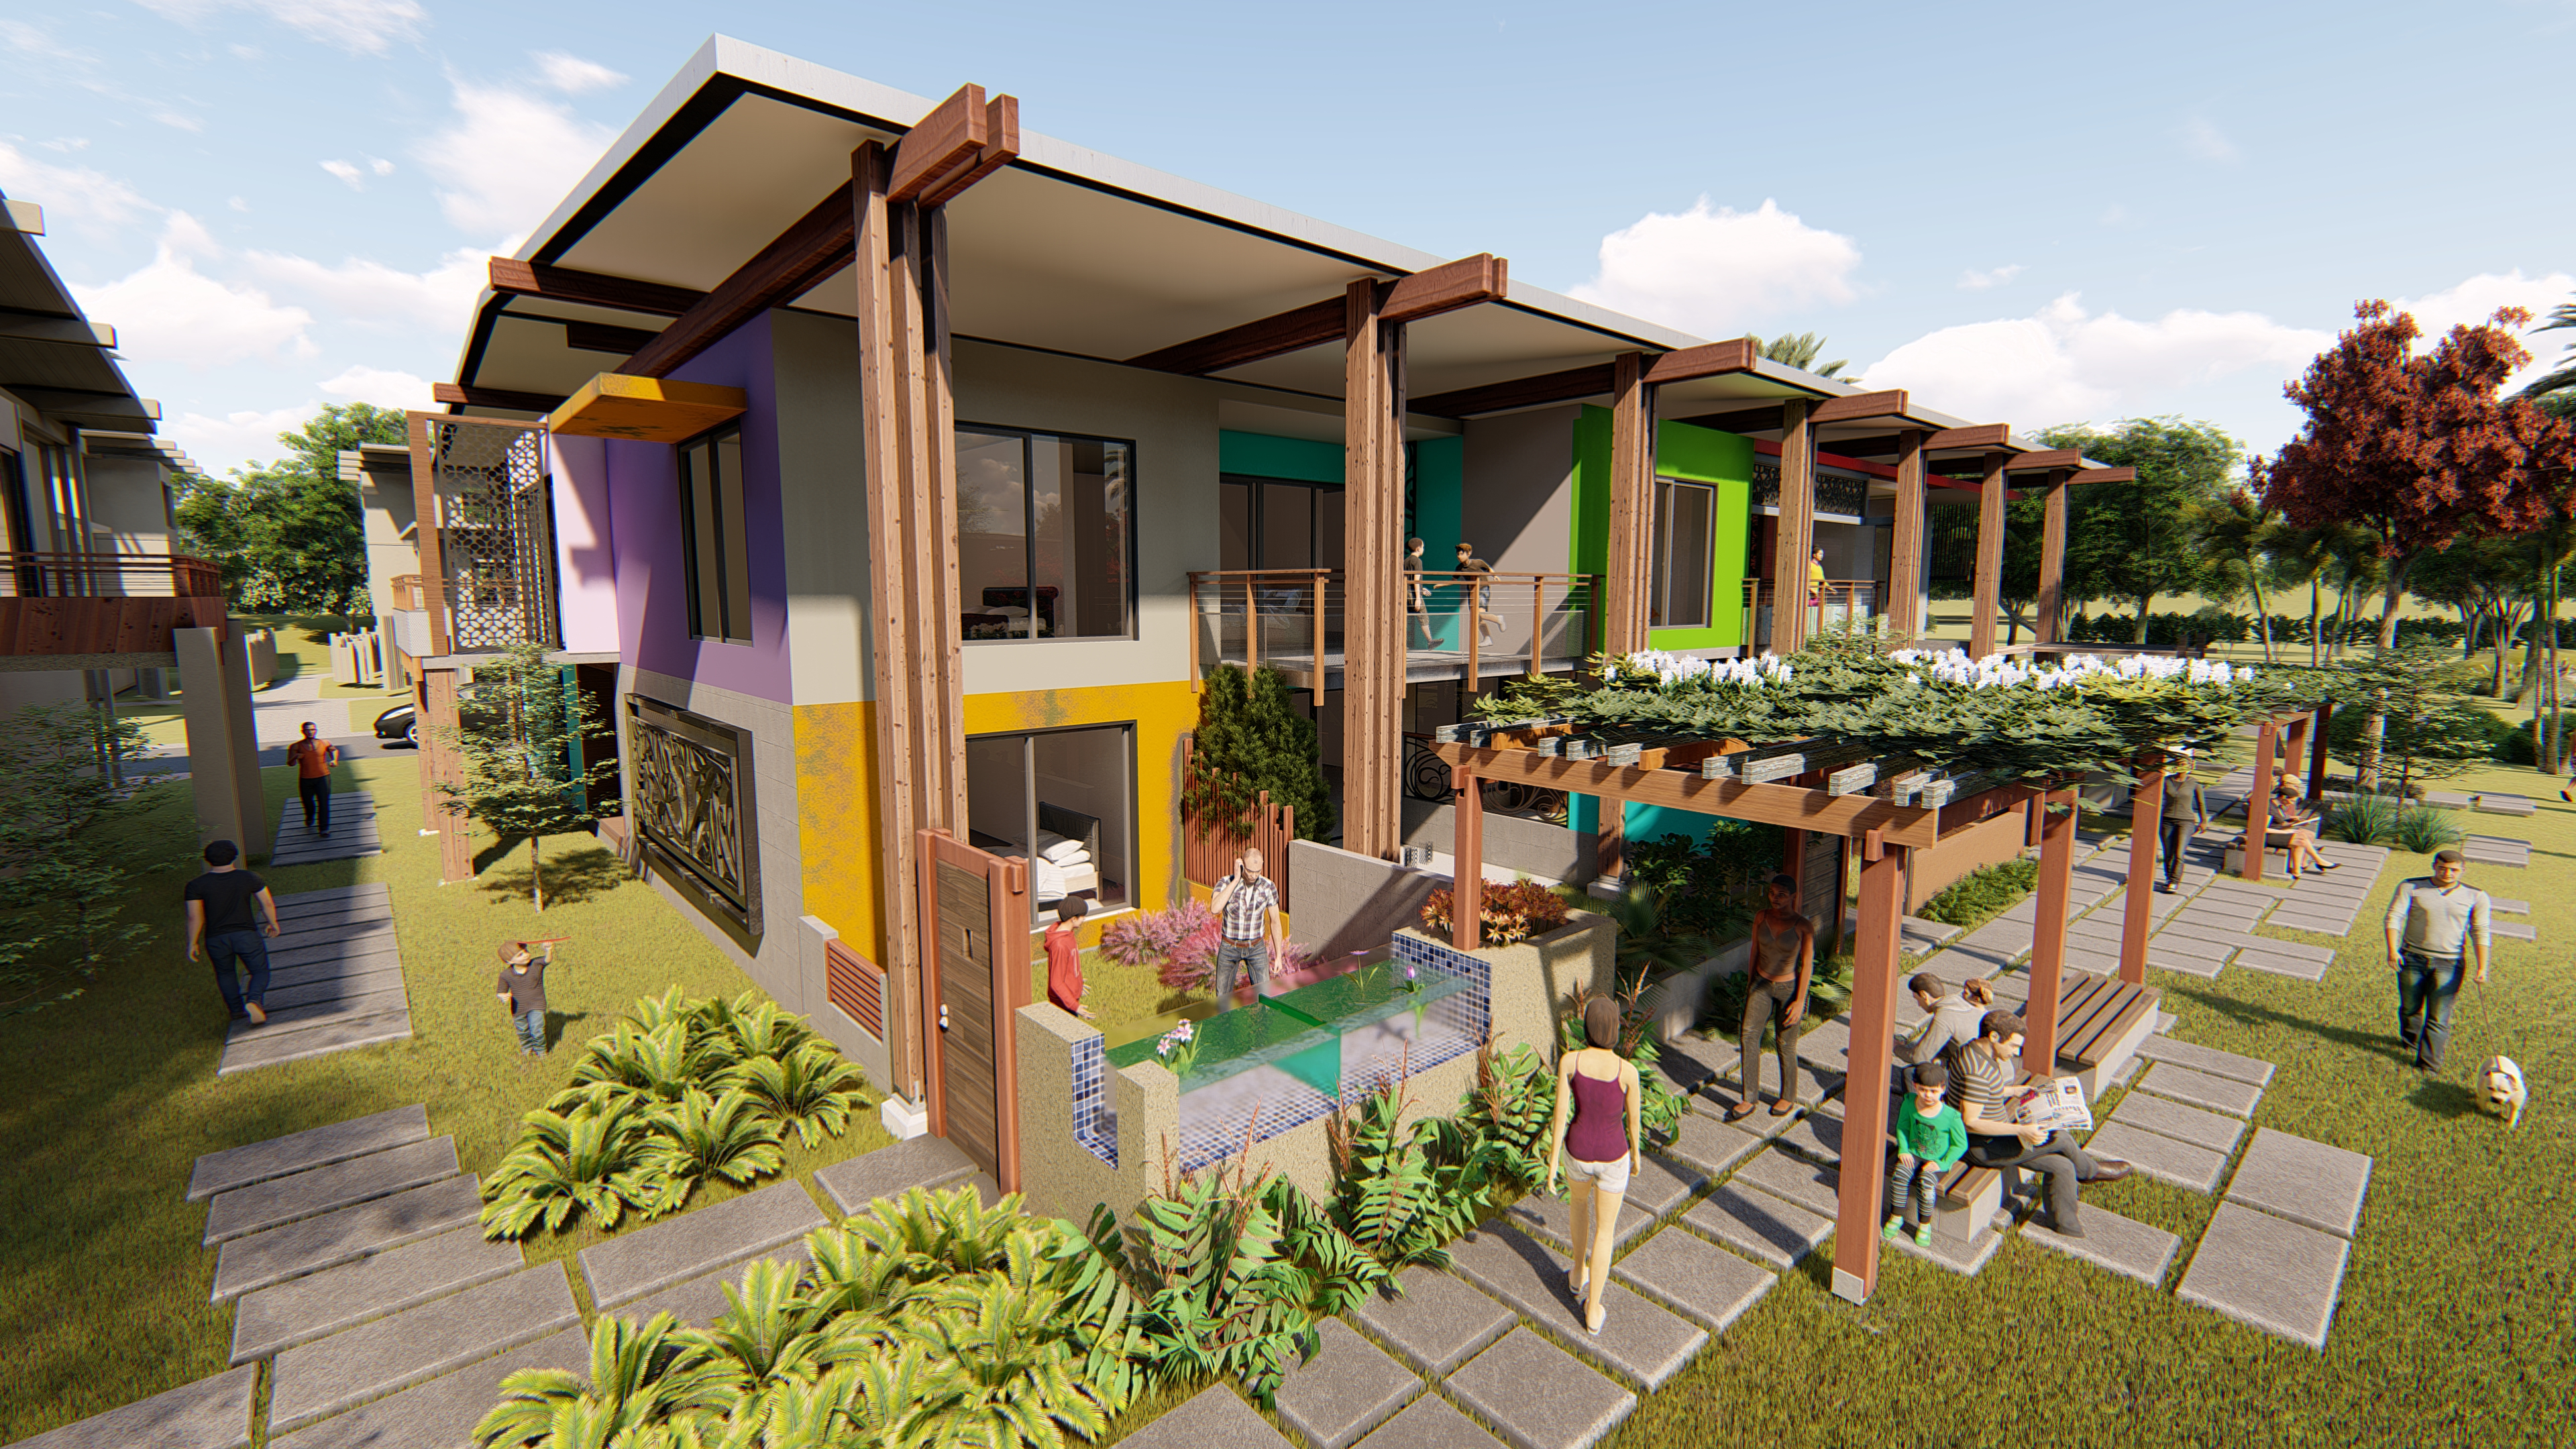 modular and flexible affordable housing